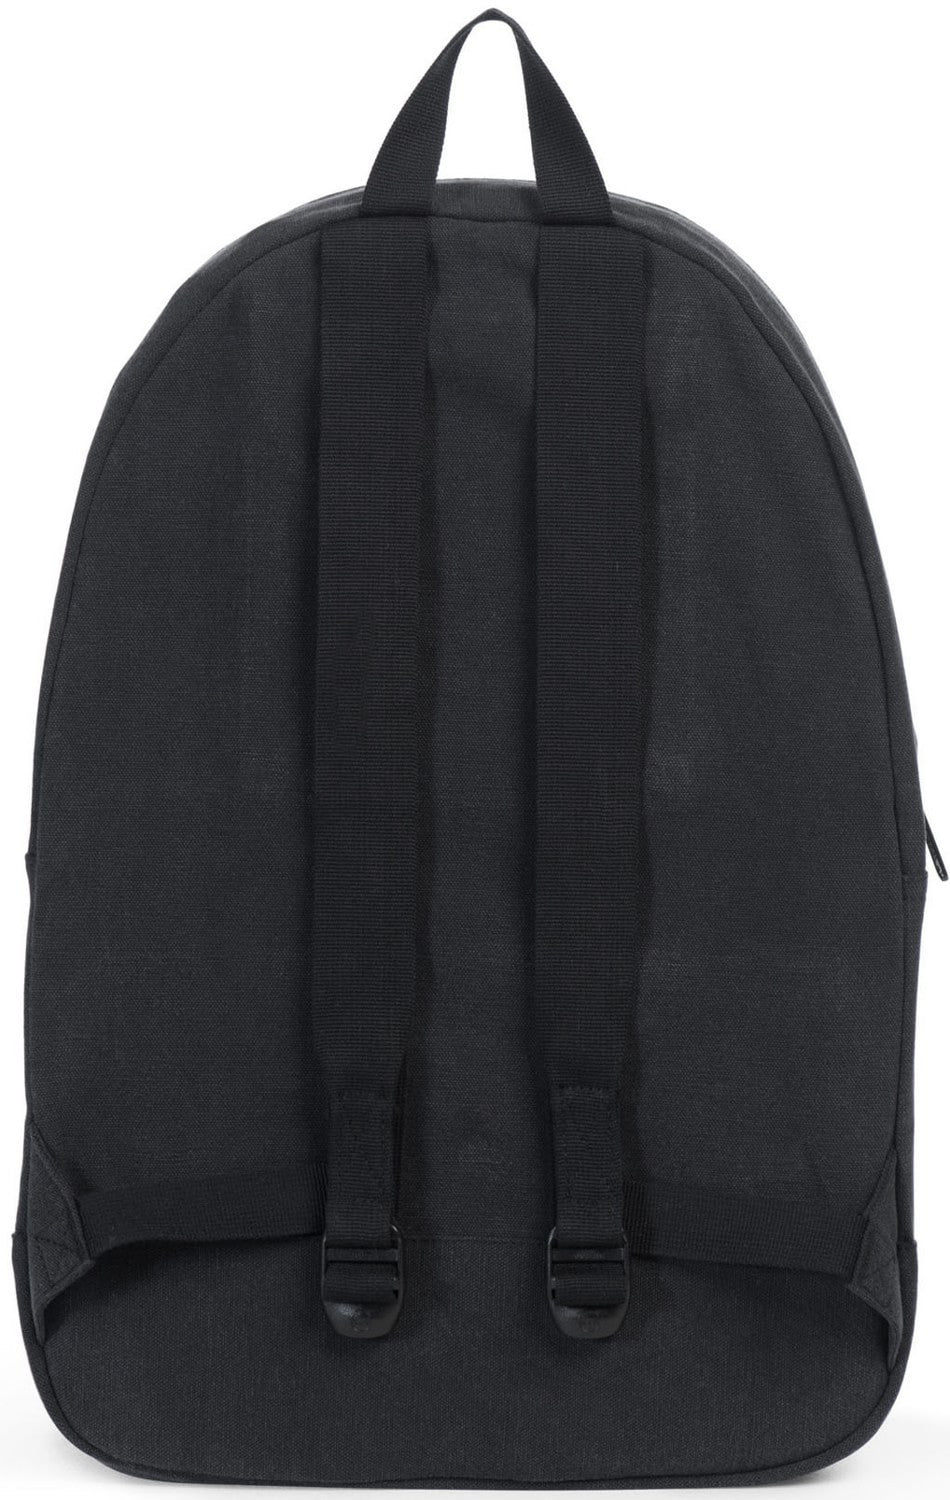 Herschel Supply Co. - Packable Daypack, Black Canvas - The Giant Peach - 4